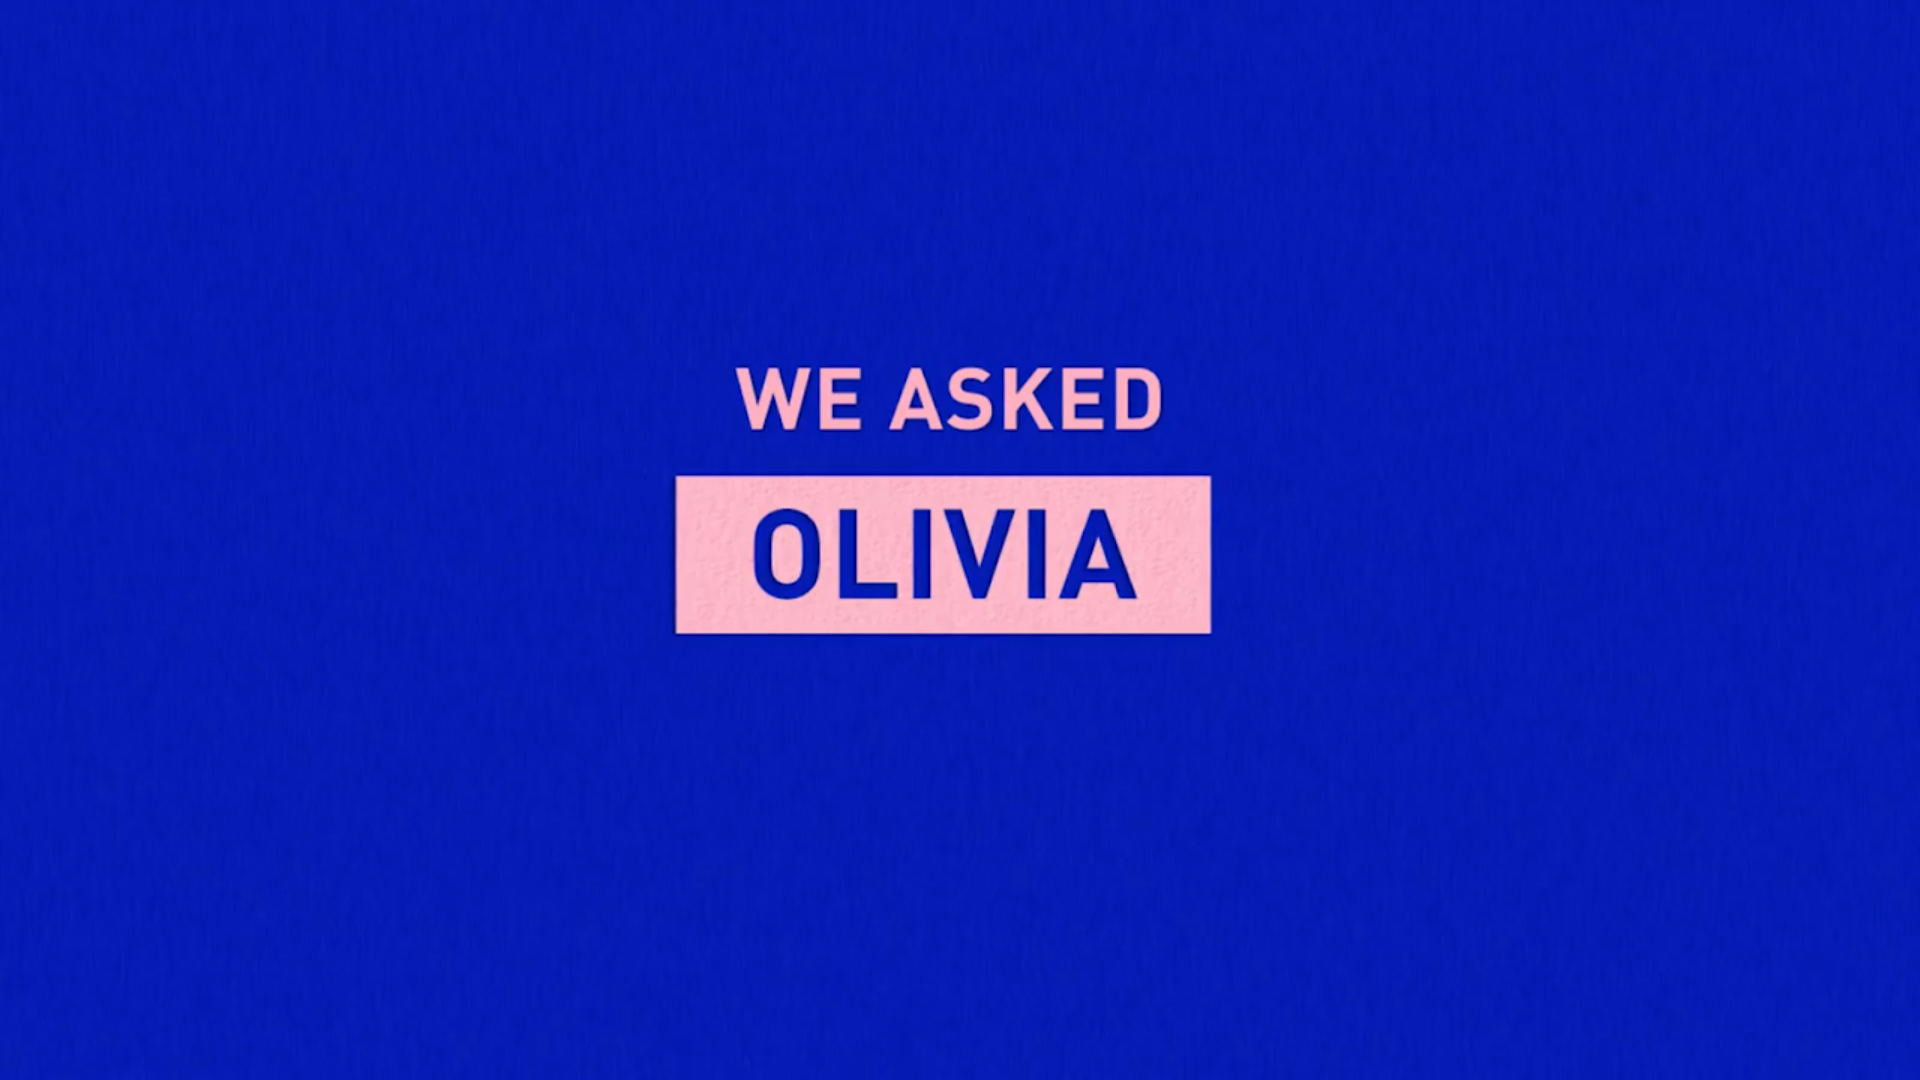 we asked olivia splash image